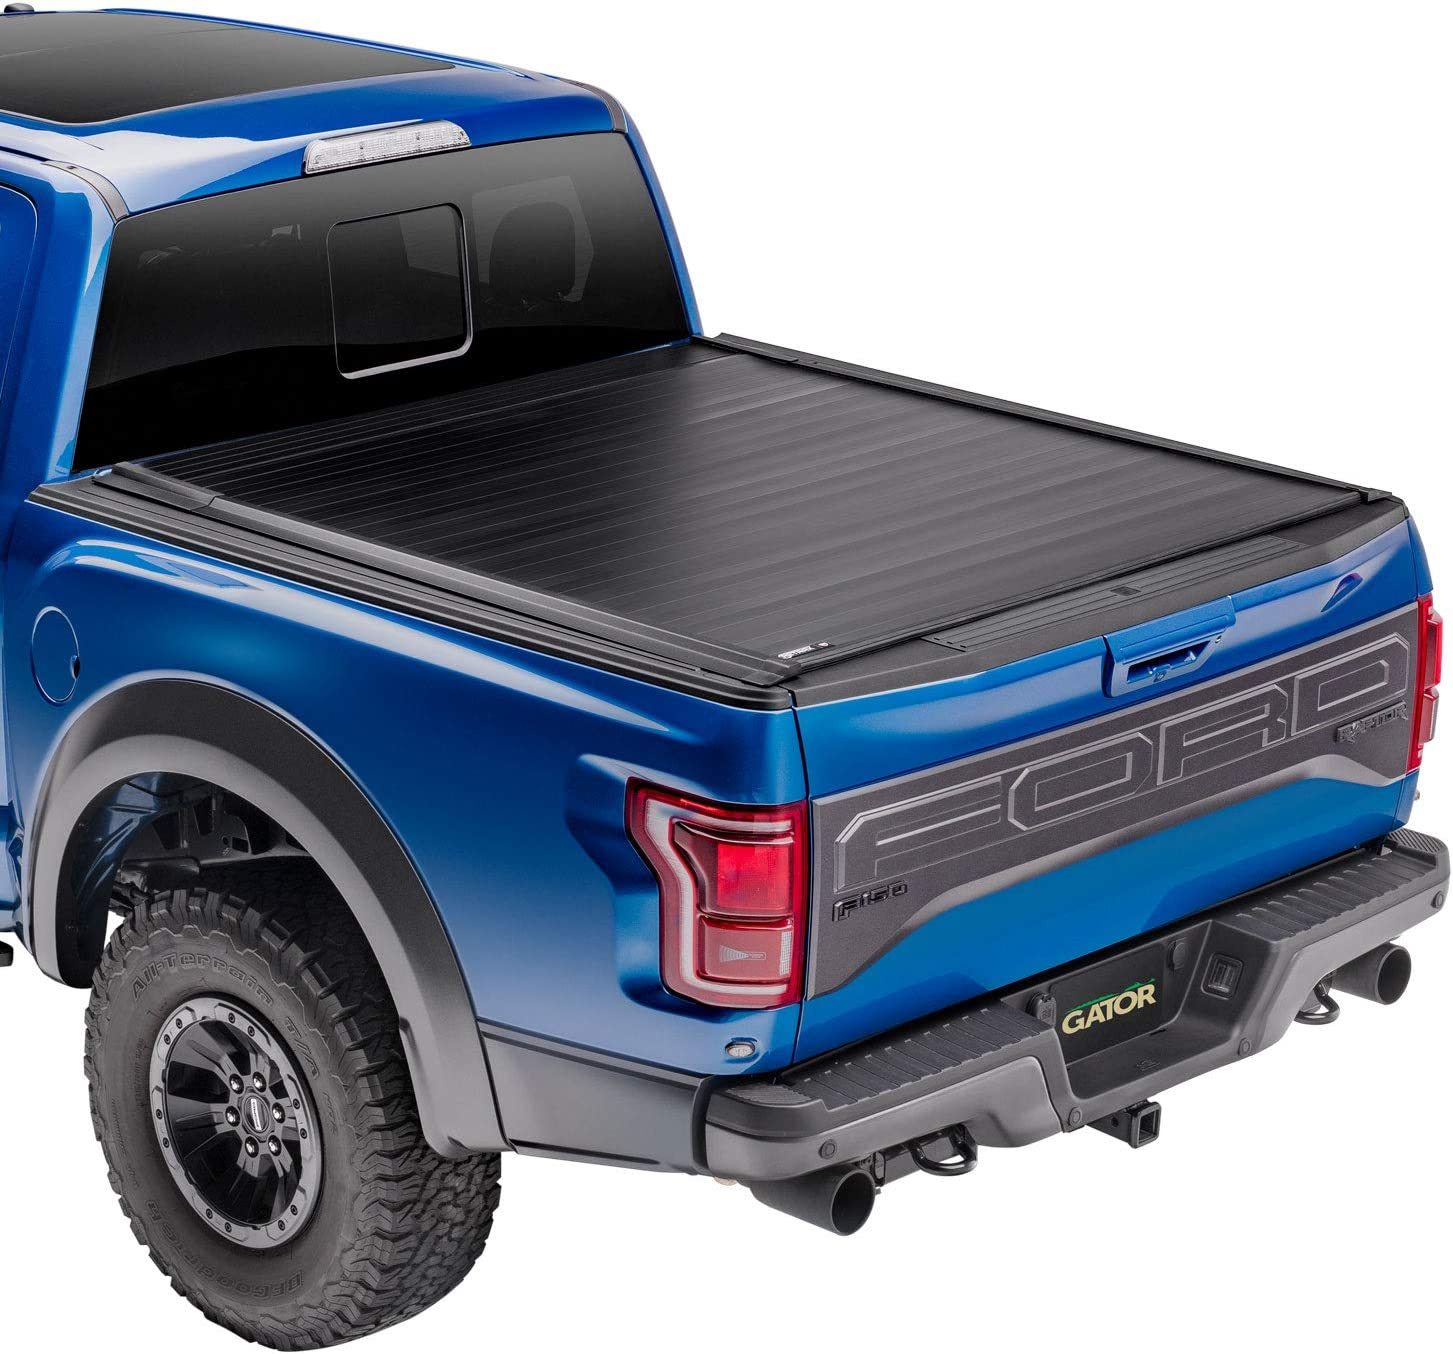 Amazon Com Gator Recoil Retractable Truck Bed Tonneau Cover G30372 Fits 2009 2014 Ford F 150 6 5 Bed Made In The Usa Automotive